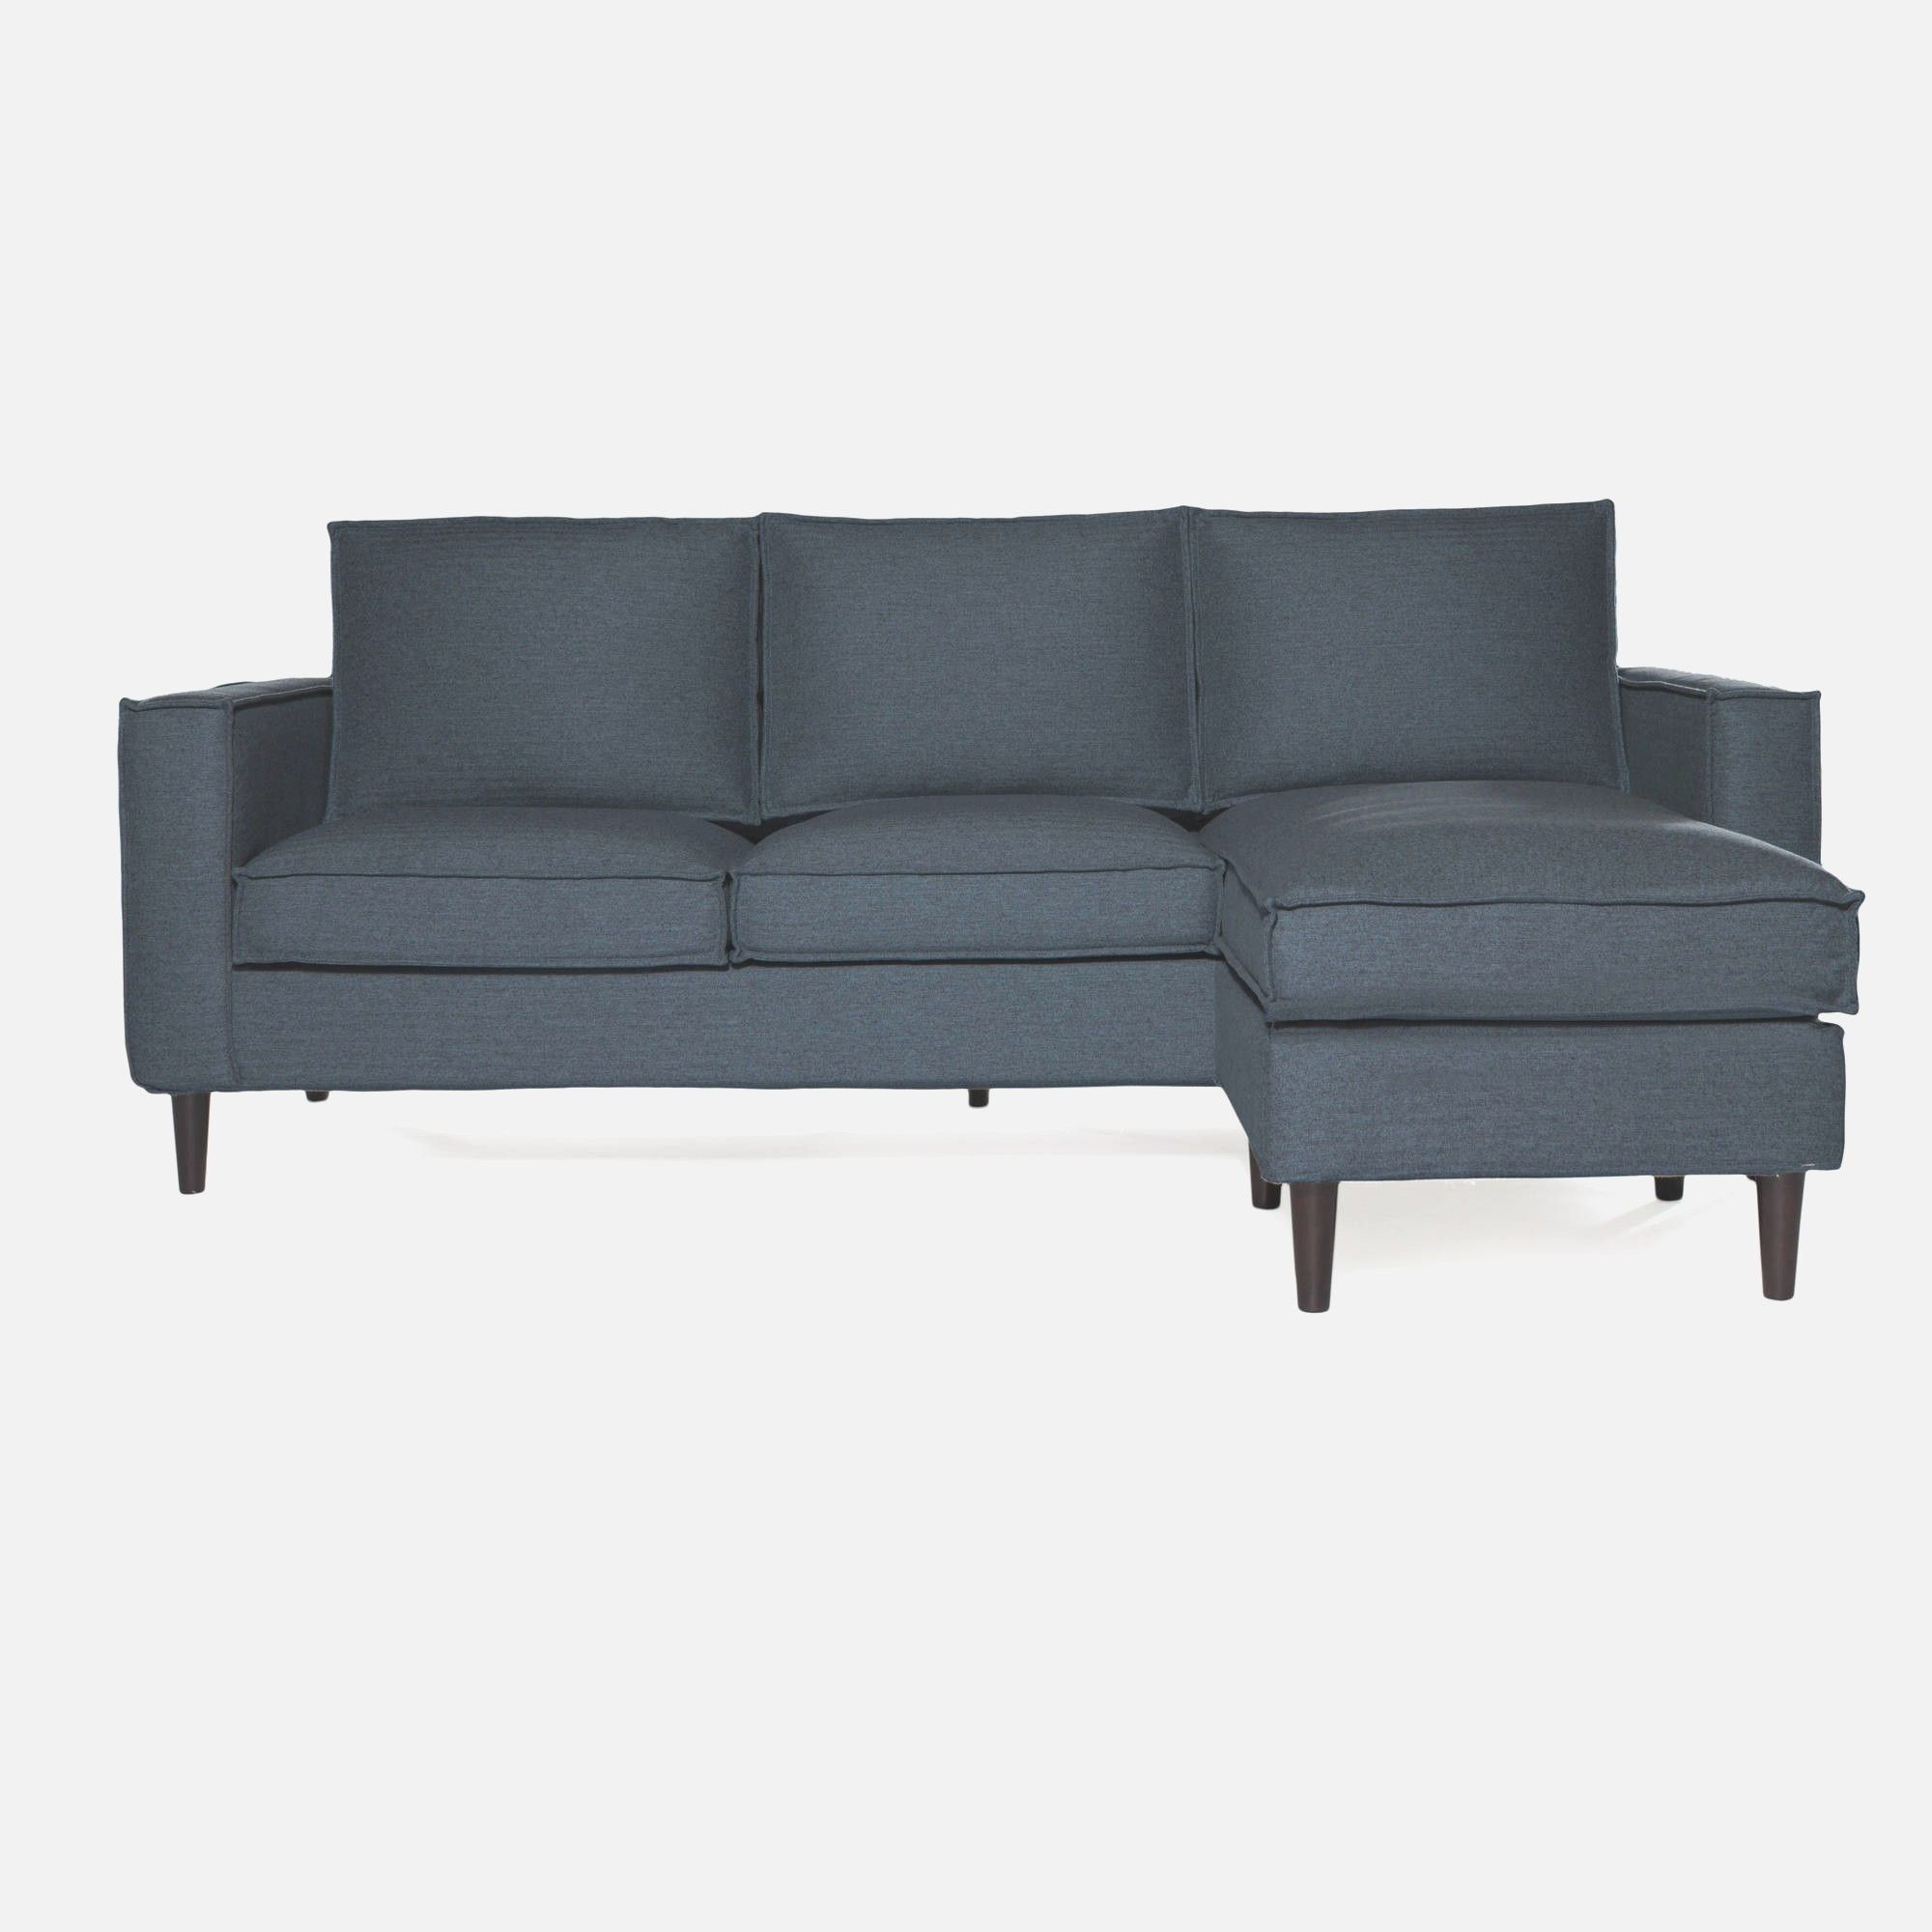 City Furniture Living Room Set - city furniture living room chairs ...